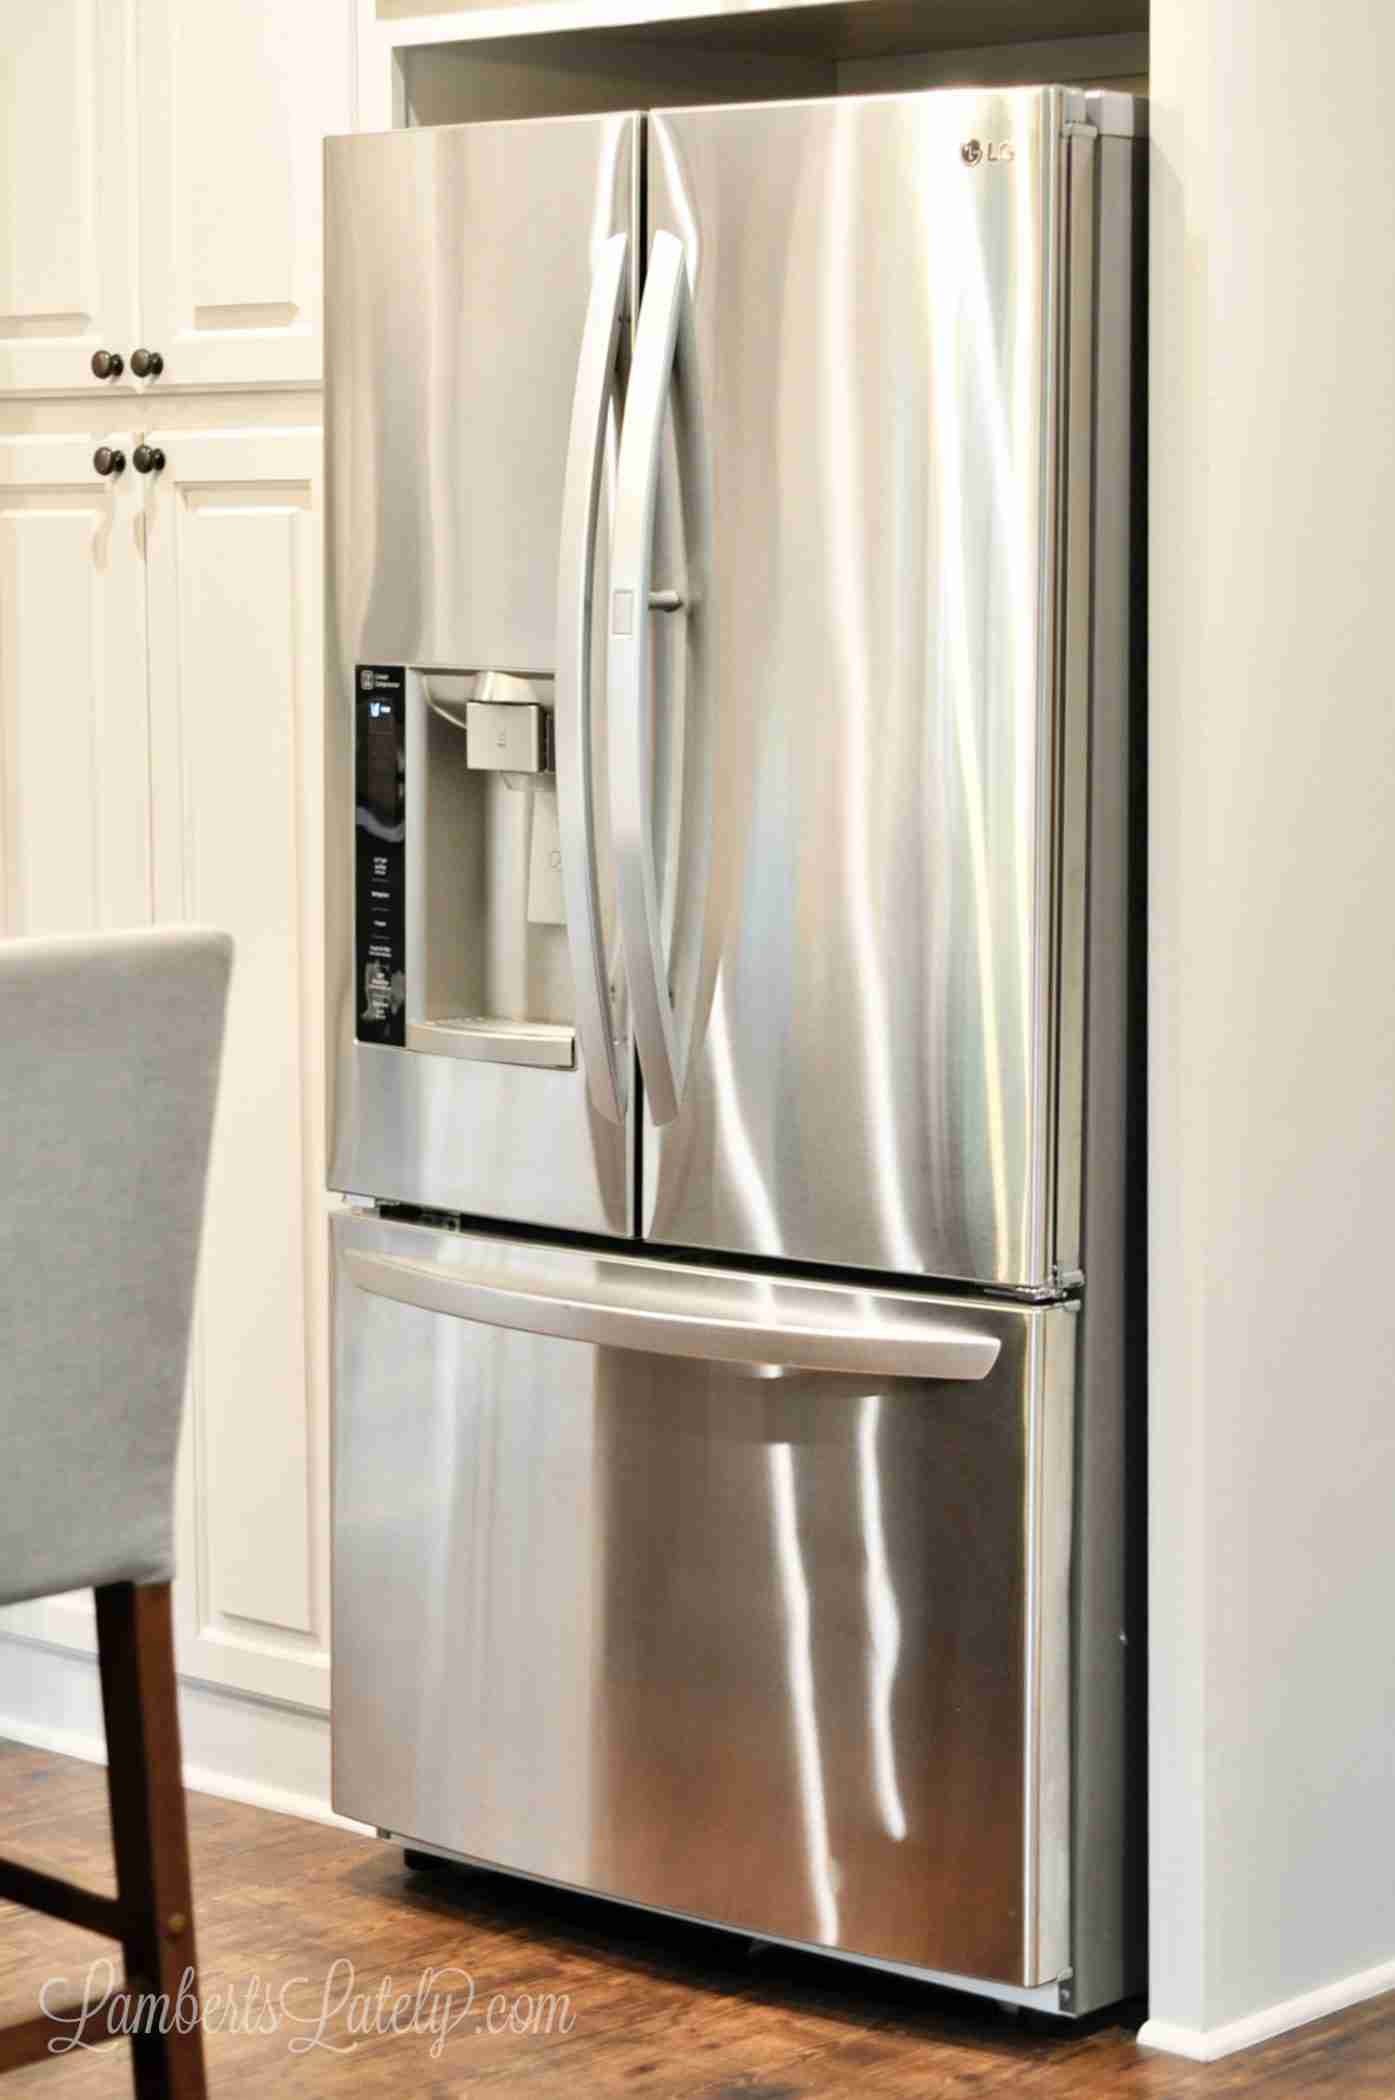 This is a great DIY method for how to clean stainless steel appliances like the refrigerator, stove, microwave, or dishwasher. Uses simple cleaners to knock out smudges and prevent fingerprints!